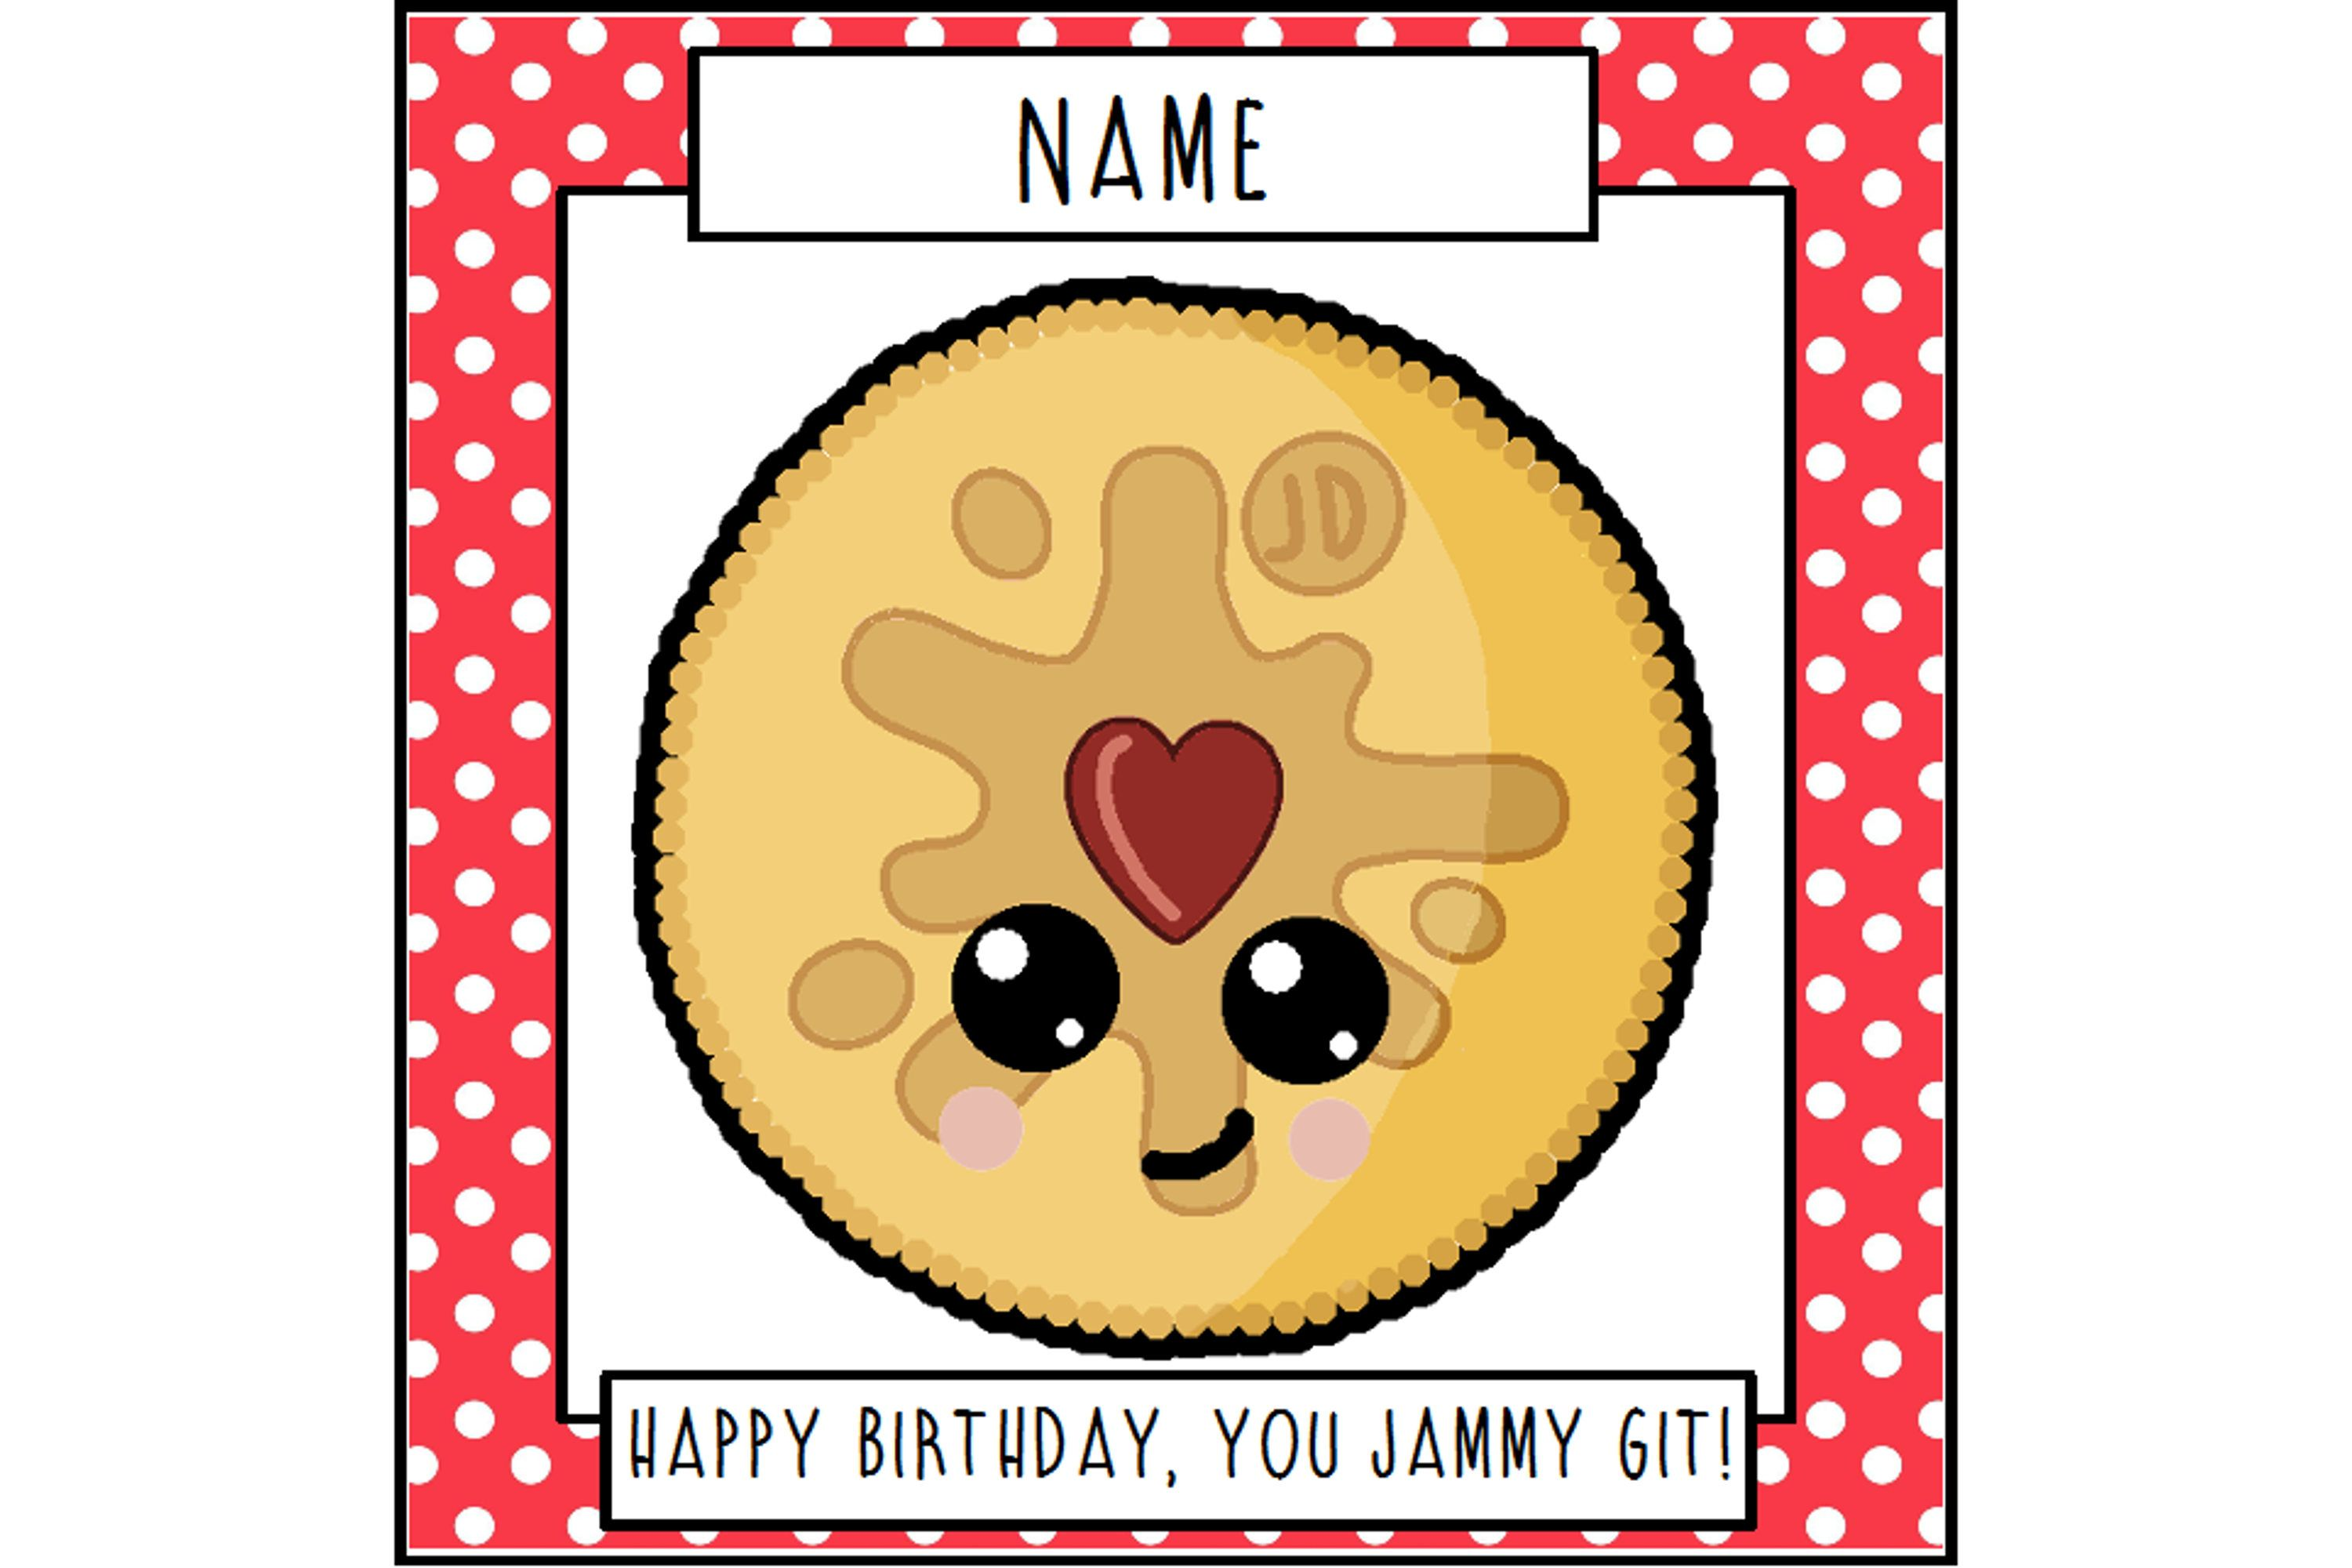 Biscuit birthday card funny card greetings card jammy git biscuit birthday card funny card greetings card jammy git funny birthday kristyandbryce Image collections